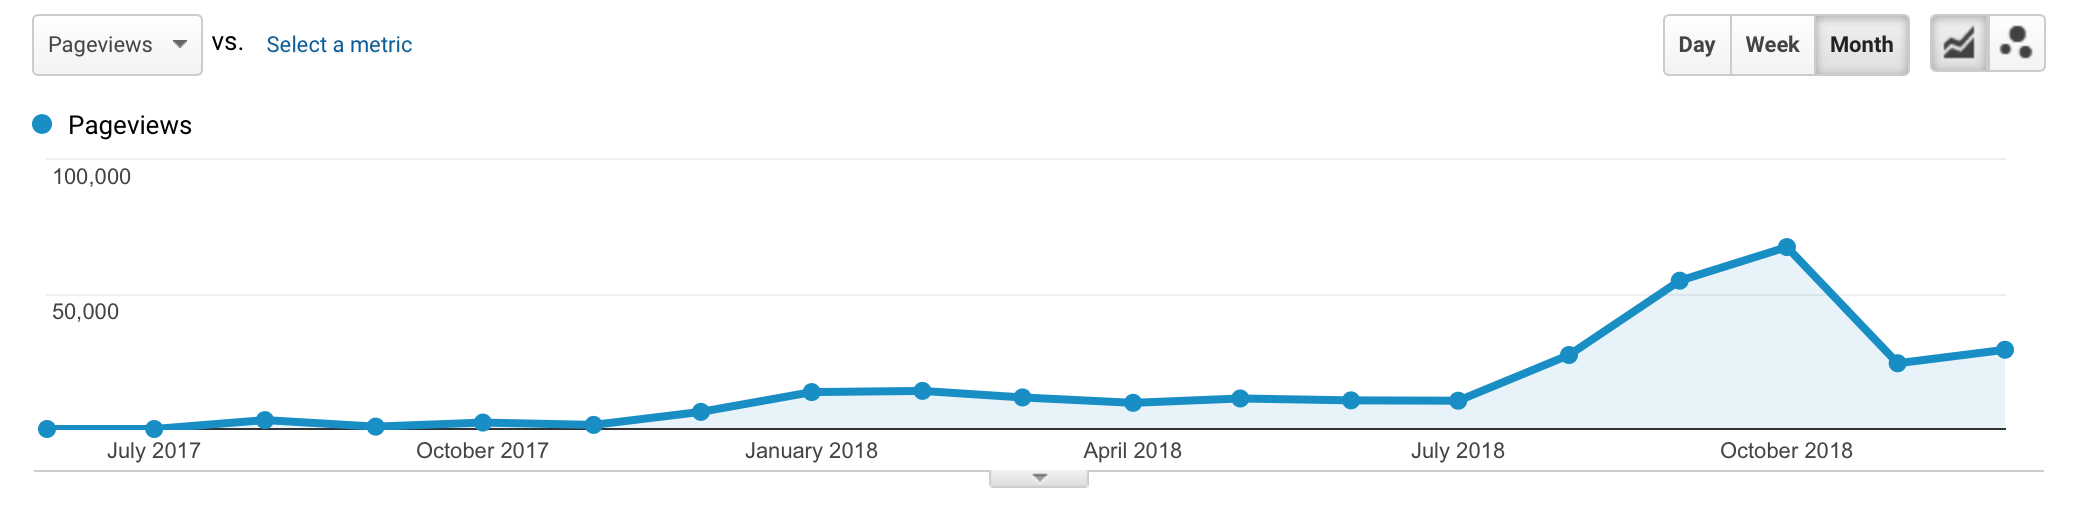 Pageviews by month across all of Artnome since the site started in June of 2017